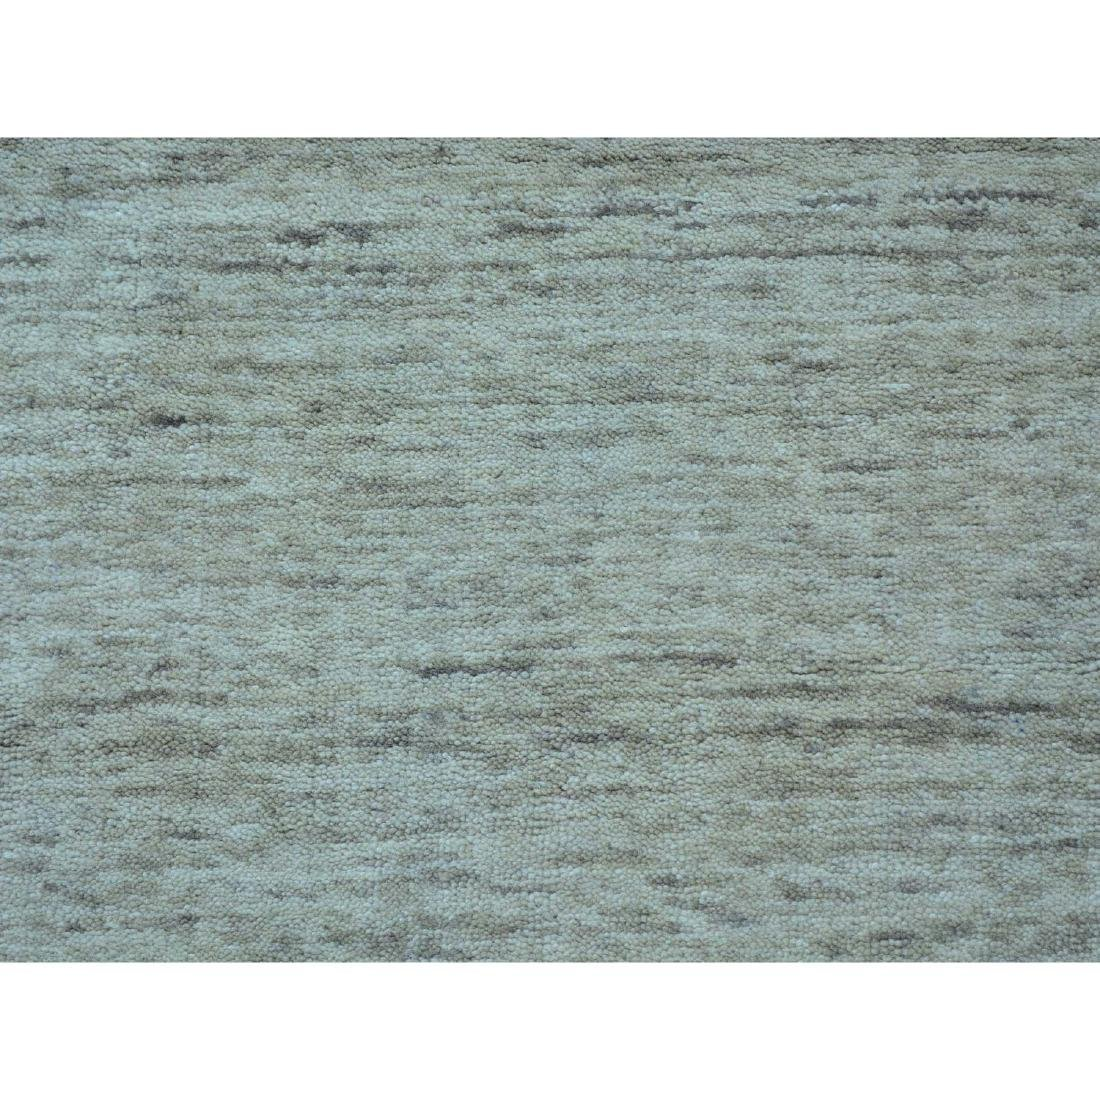 Thick And Plush Modern Hand Loomed Gabbeh Runner - 4